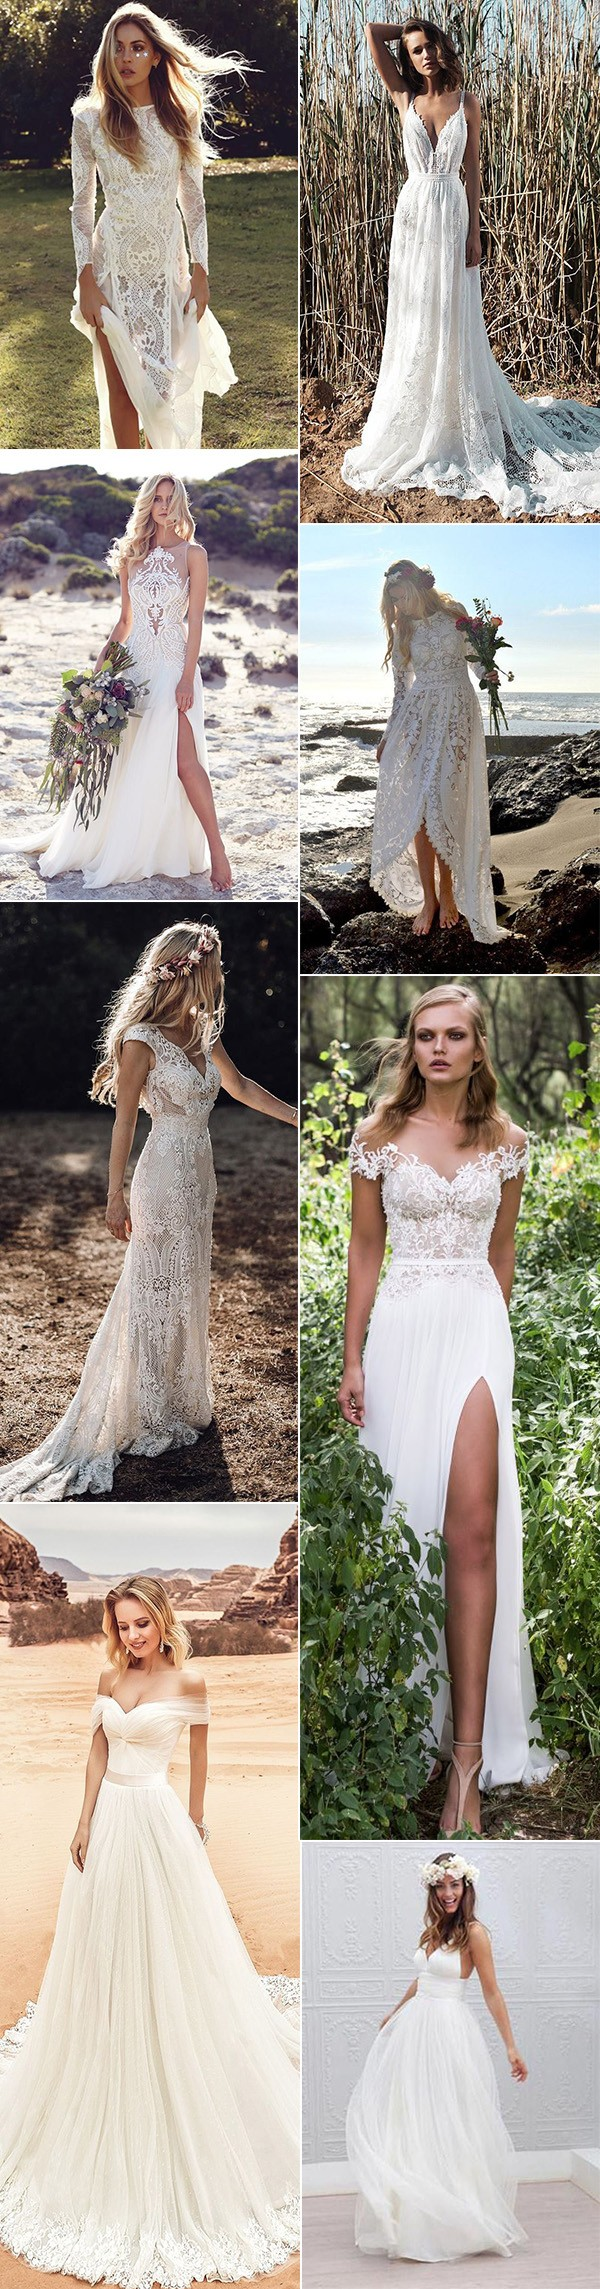 pretty beach wedding dresses for 2019 brides